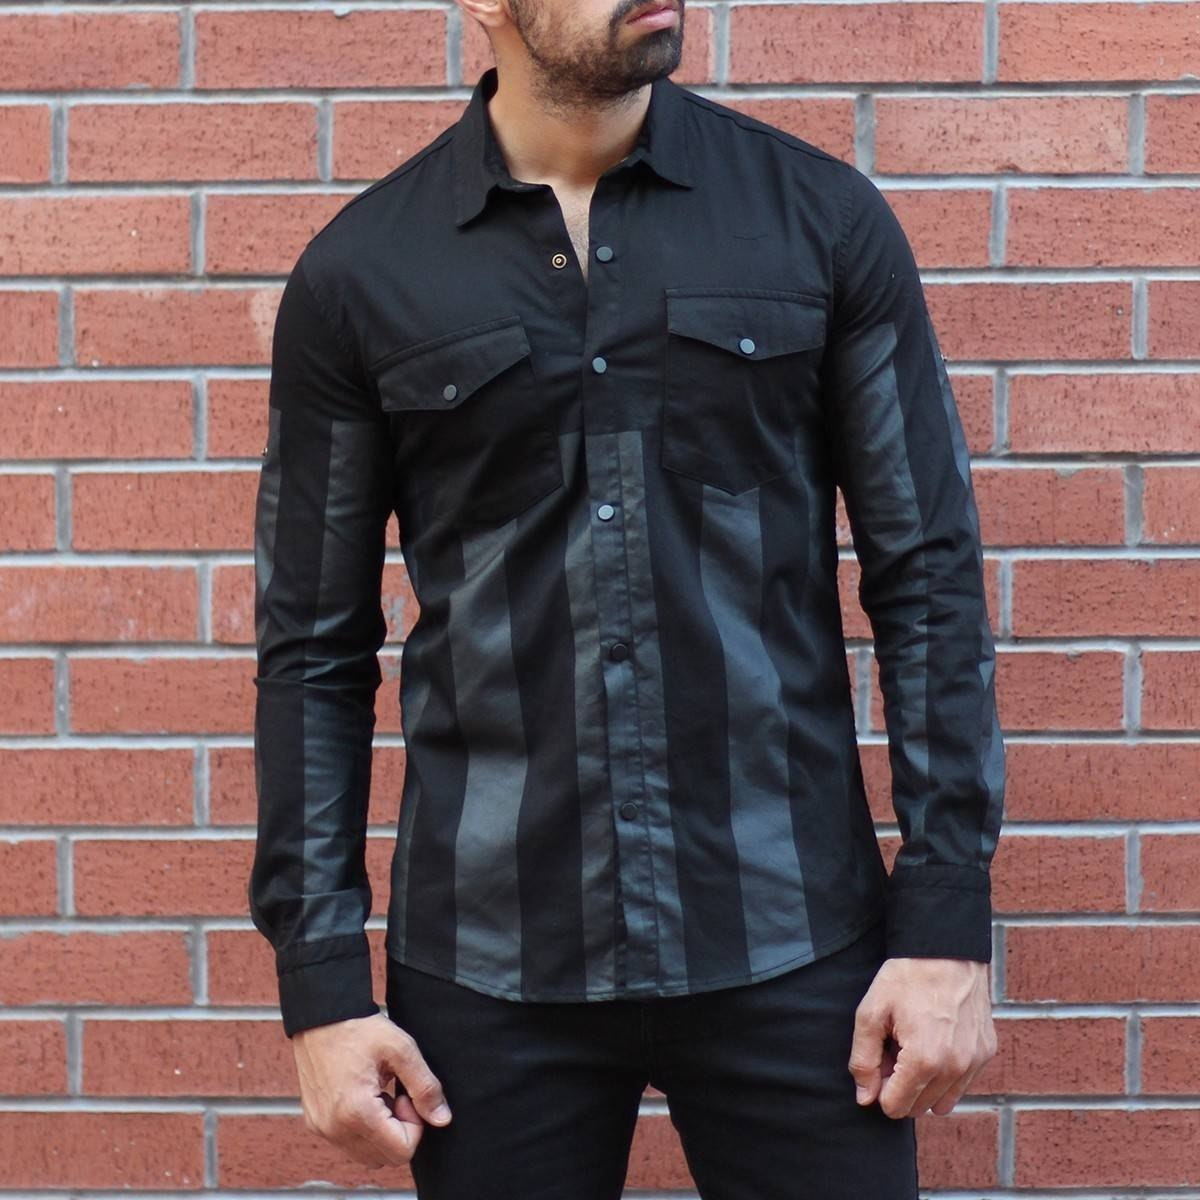 Men's Slim Fit Shirt With Pockets In Black&Gray MV Shirt Collection - 2